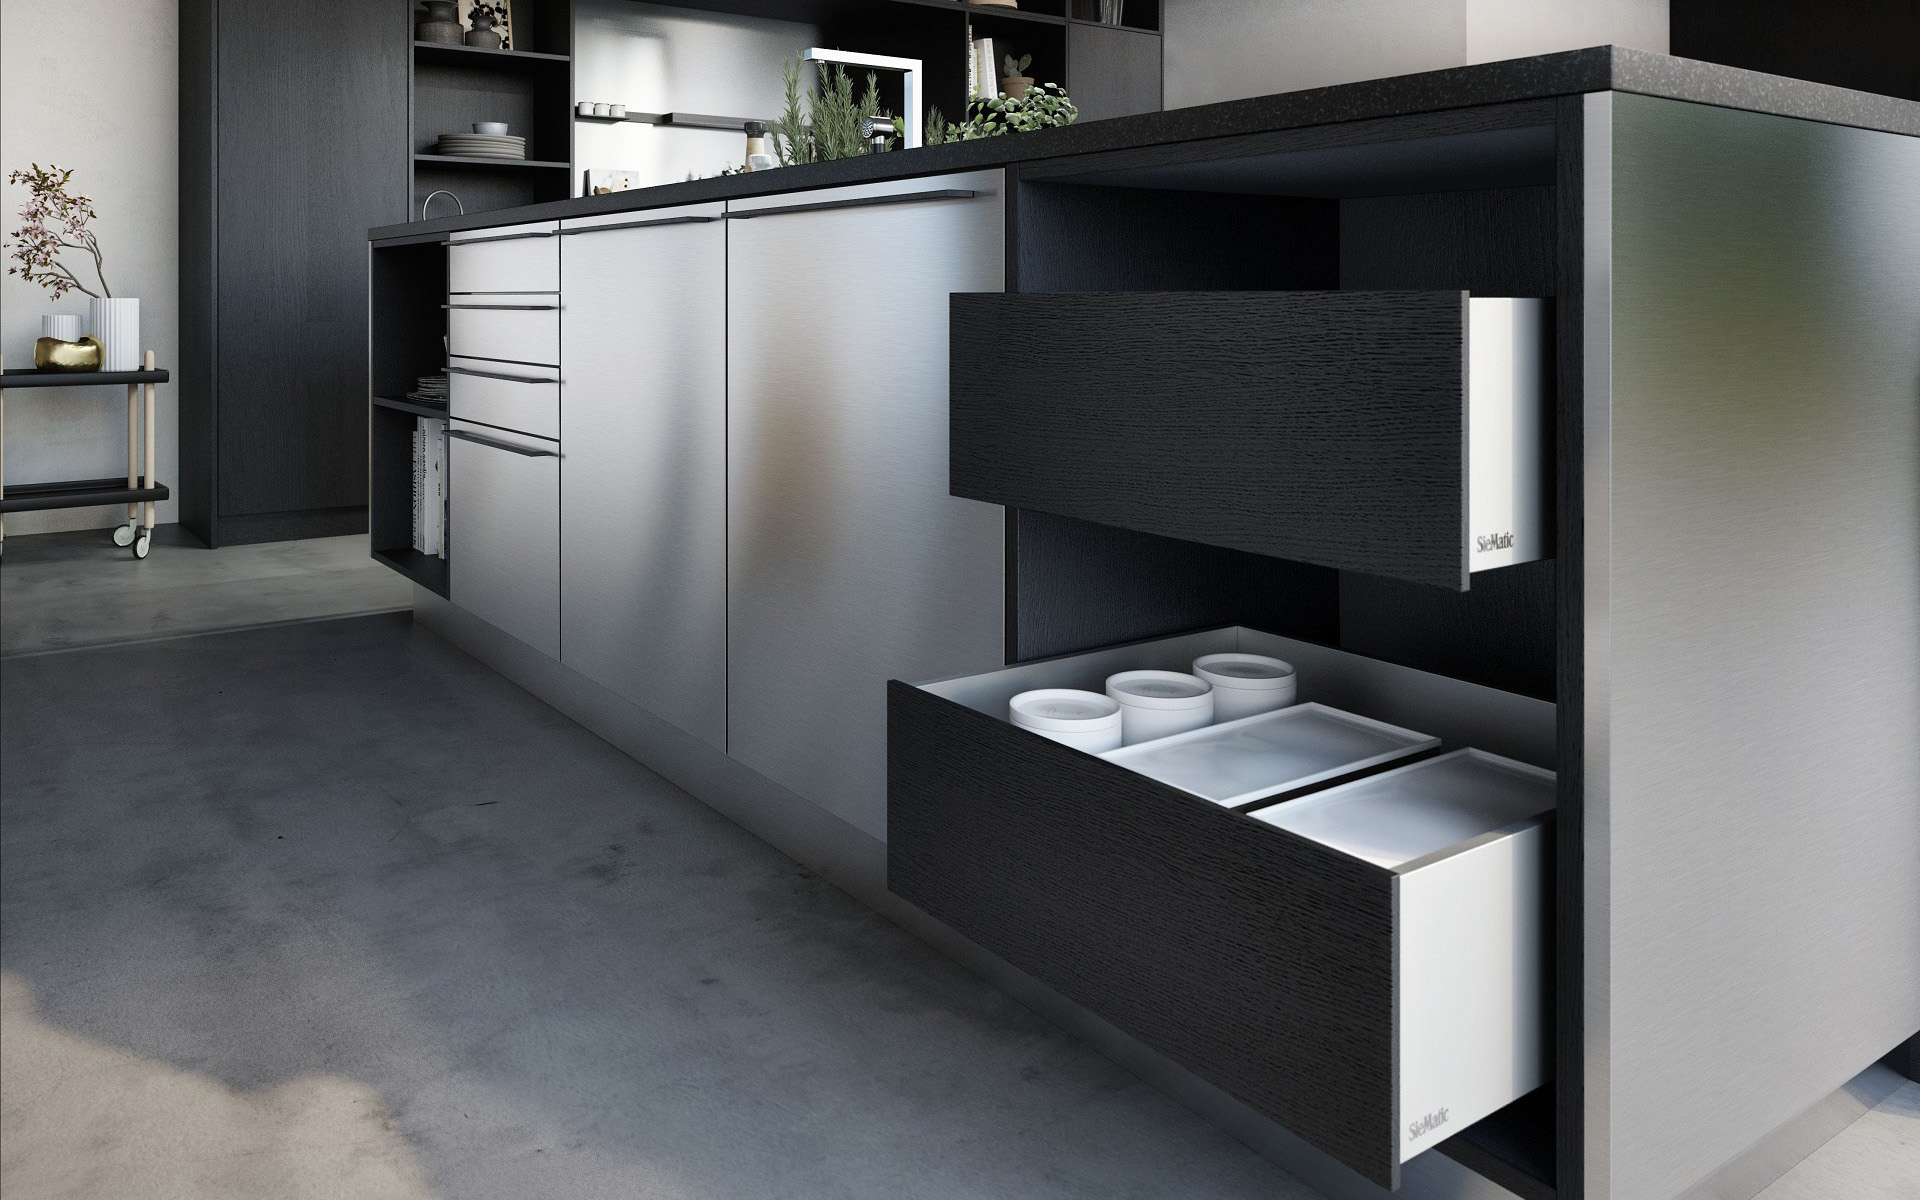 SieMatic Urban SE kitchen island open drawers in graphite oak with aluminum interior accessories